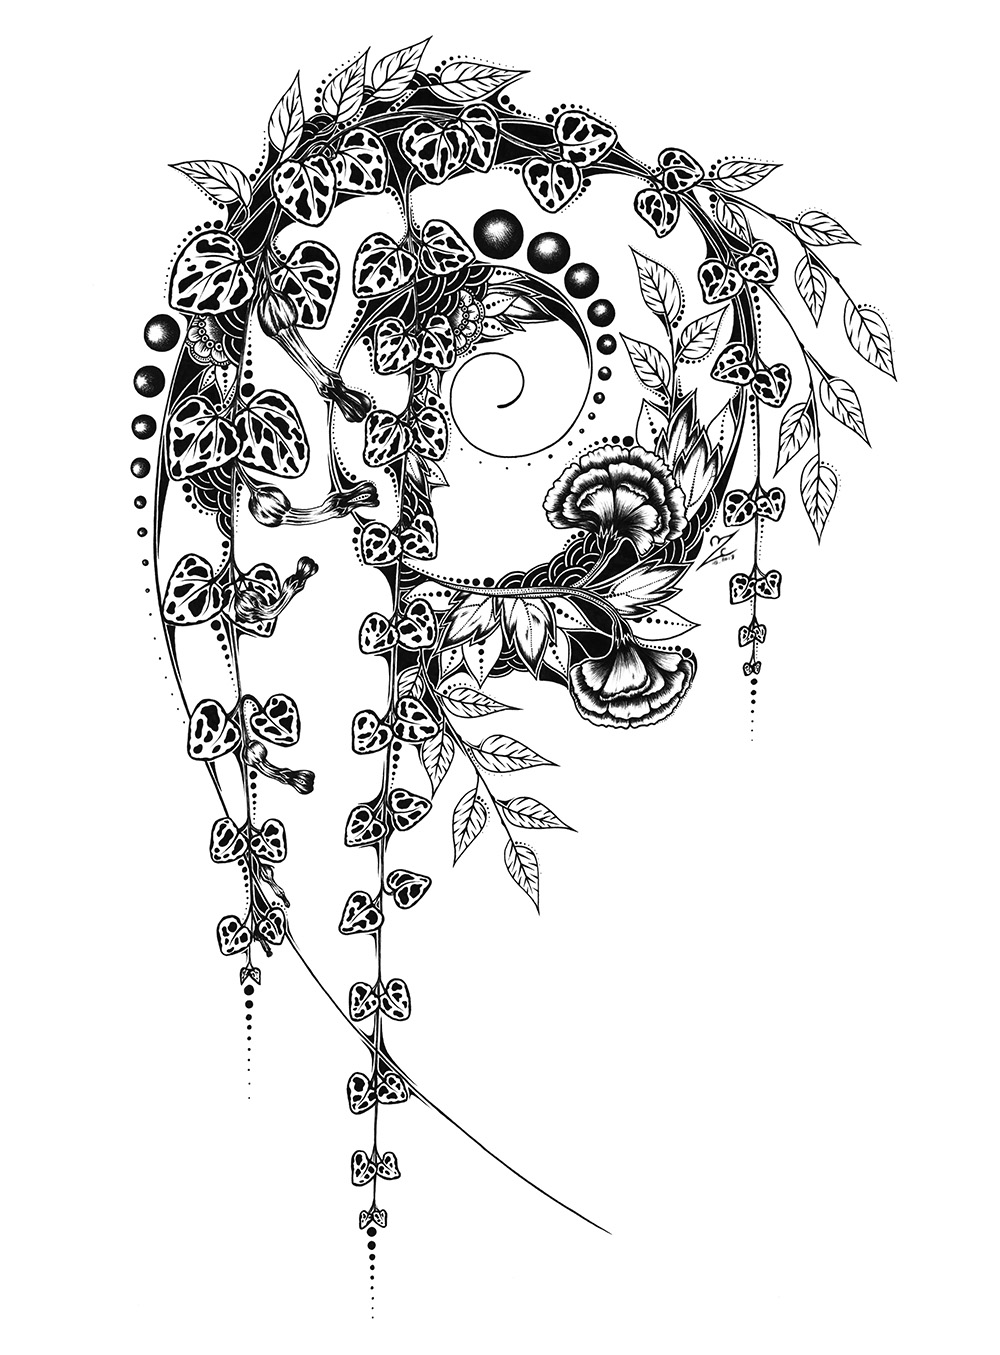 Ceropegia - Original Drawing - 30x42 cm - 369€